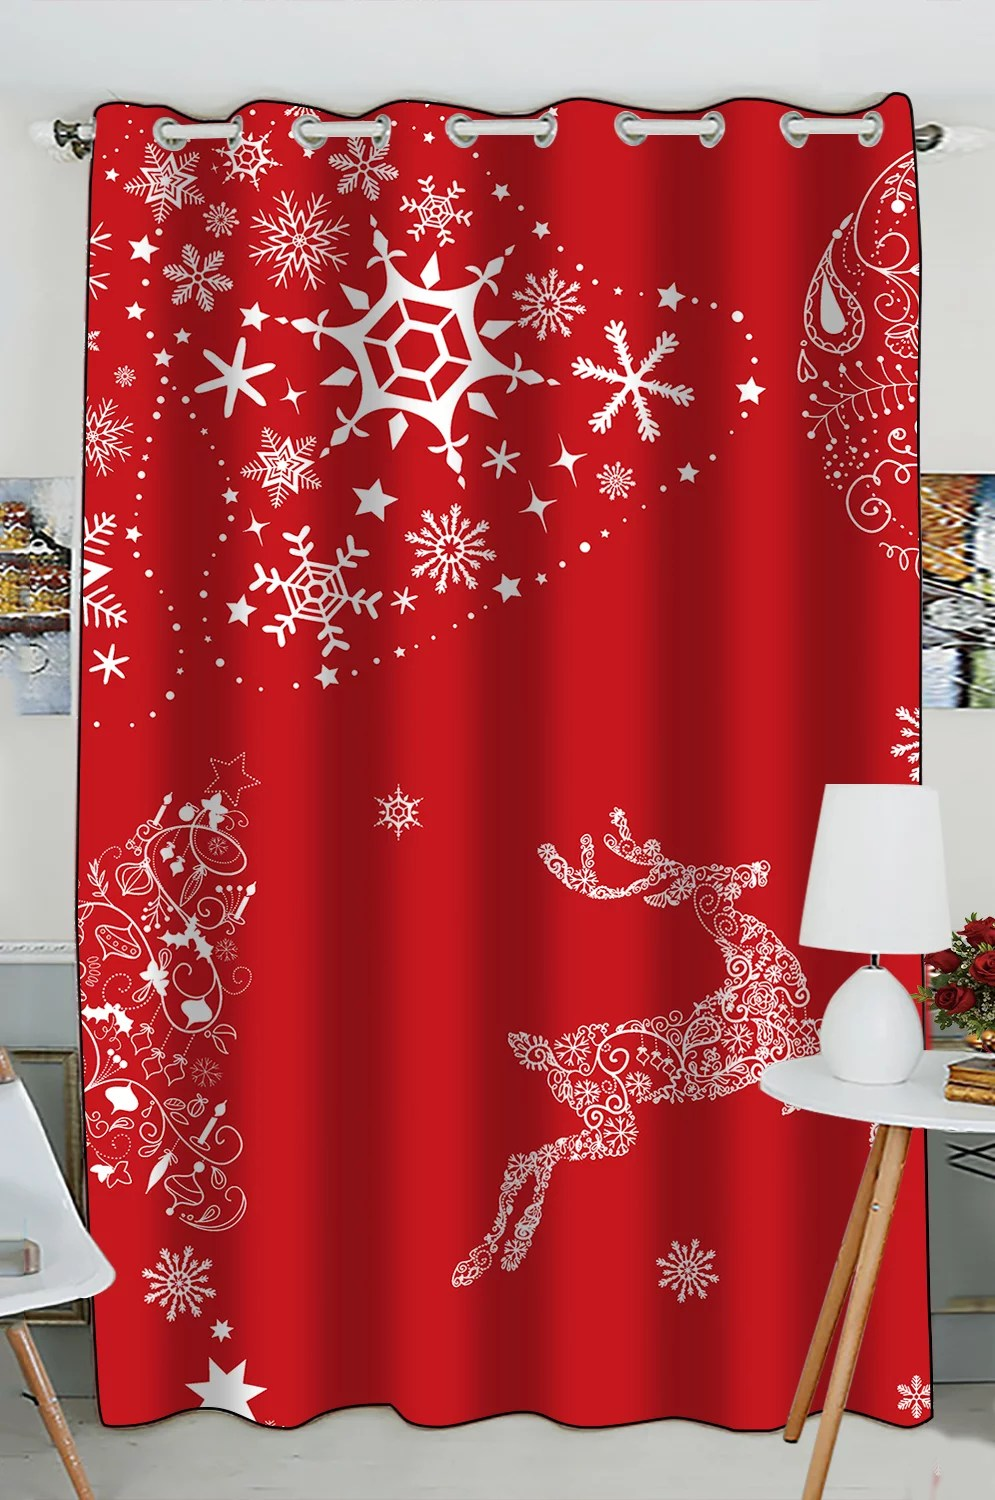 gckg christmas window curtain xmas merry christmas reindeer red grommet blackout curtain room darkening curtains for bedroom and kitchen size 52 w x